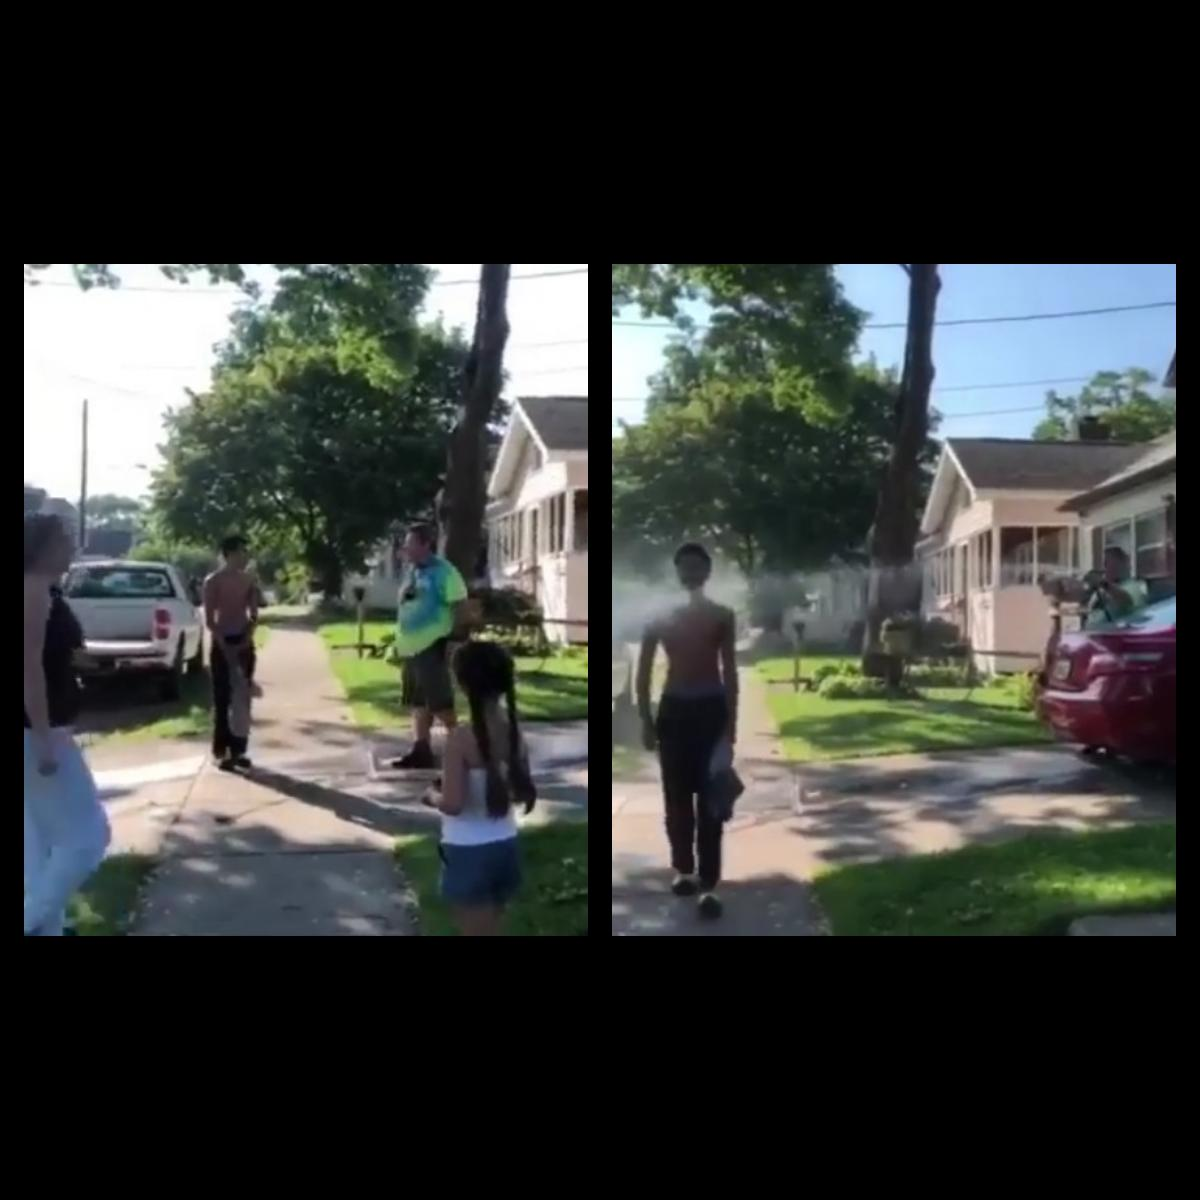 Racist White Man Spraying Black Teen With Water Hose